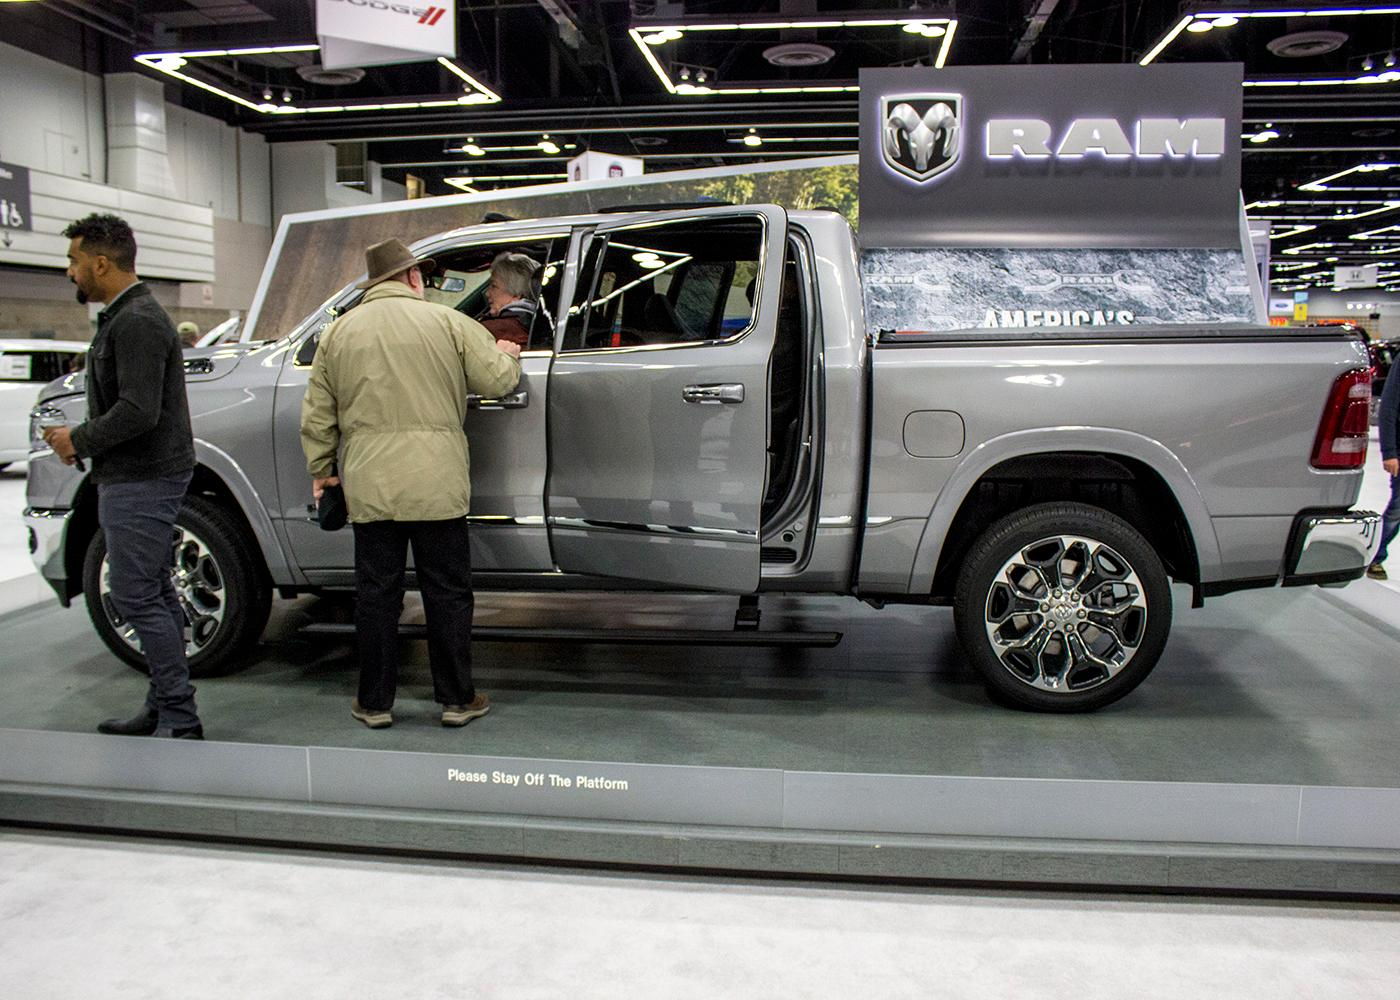 Dodge Ram - The Portland International Auto Show began at the Oregon Convention Center on Jan. 25, 2018. The event drew prospective buyers and others who enjoyed looking at and comparing vehicles. Photo by Amanda Butt